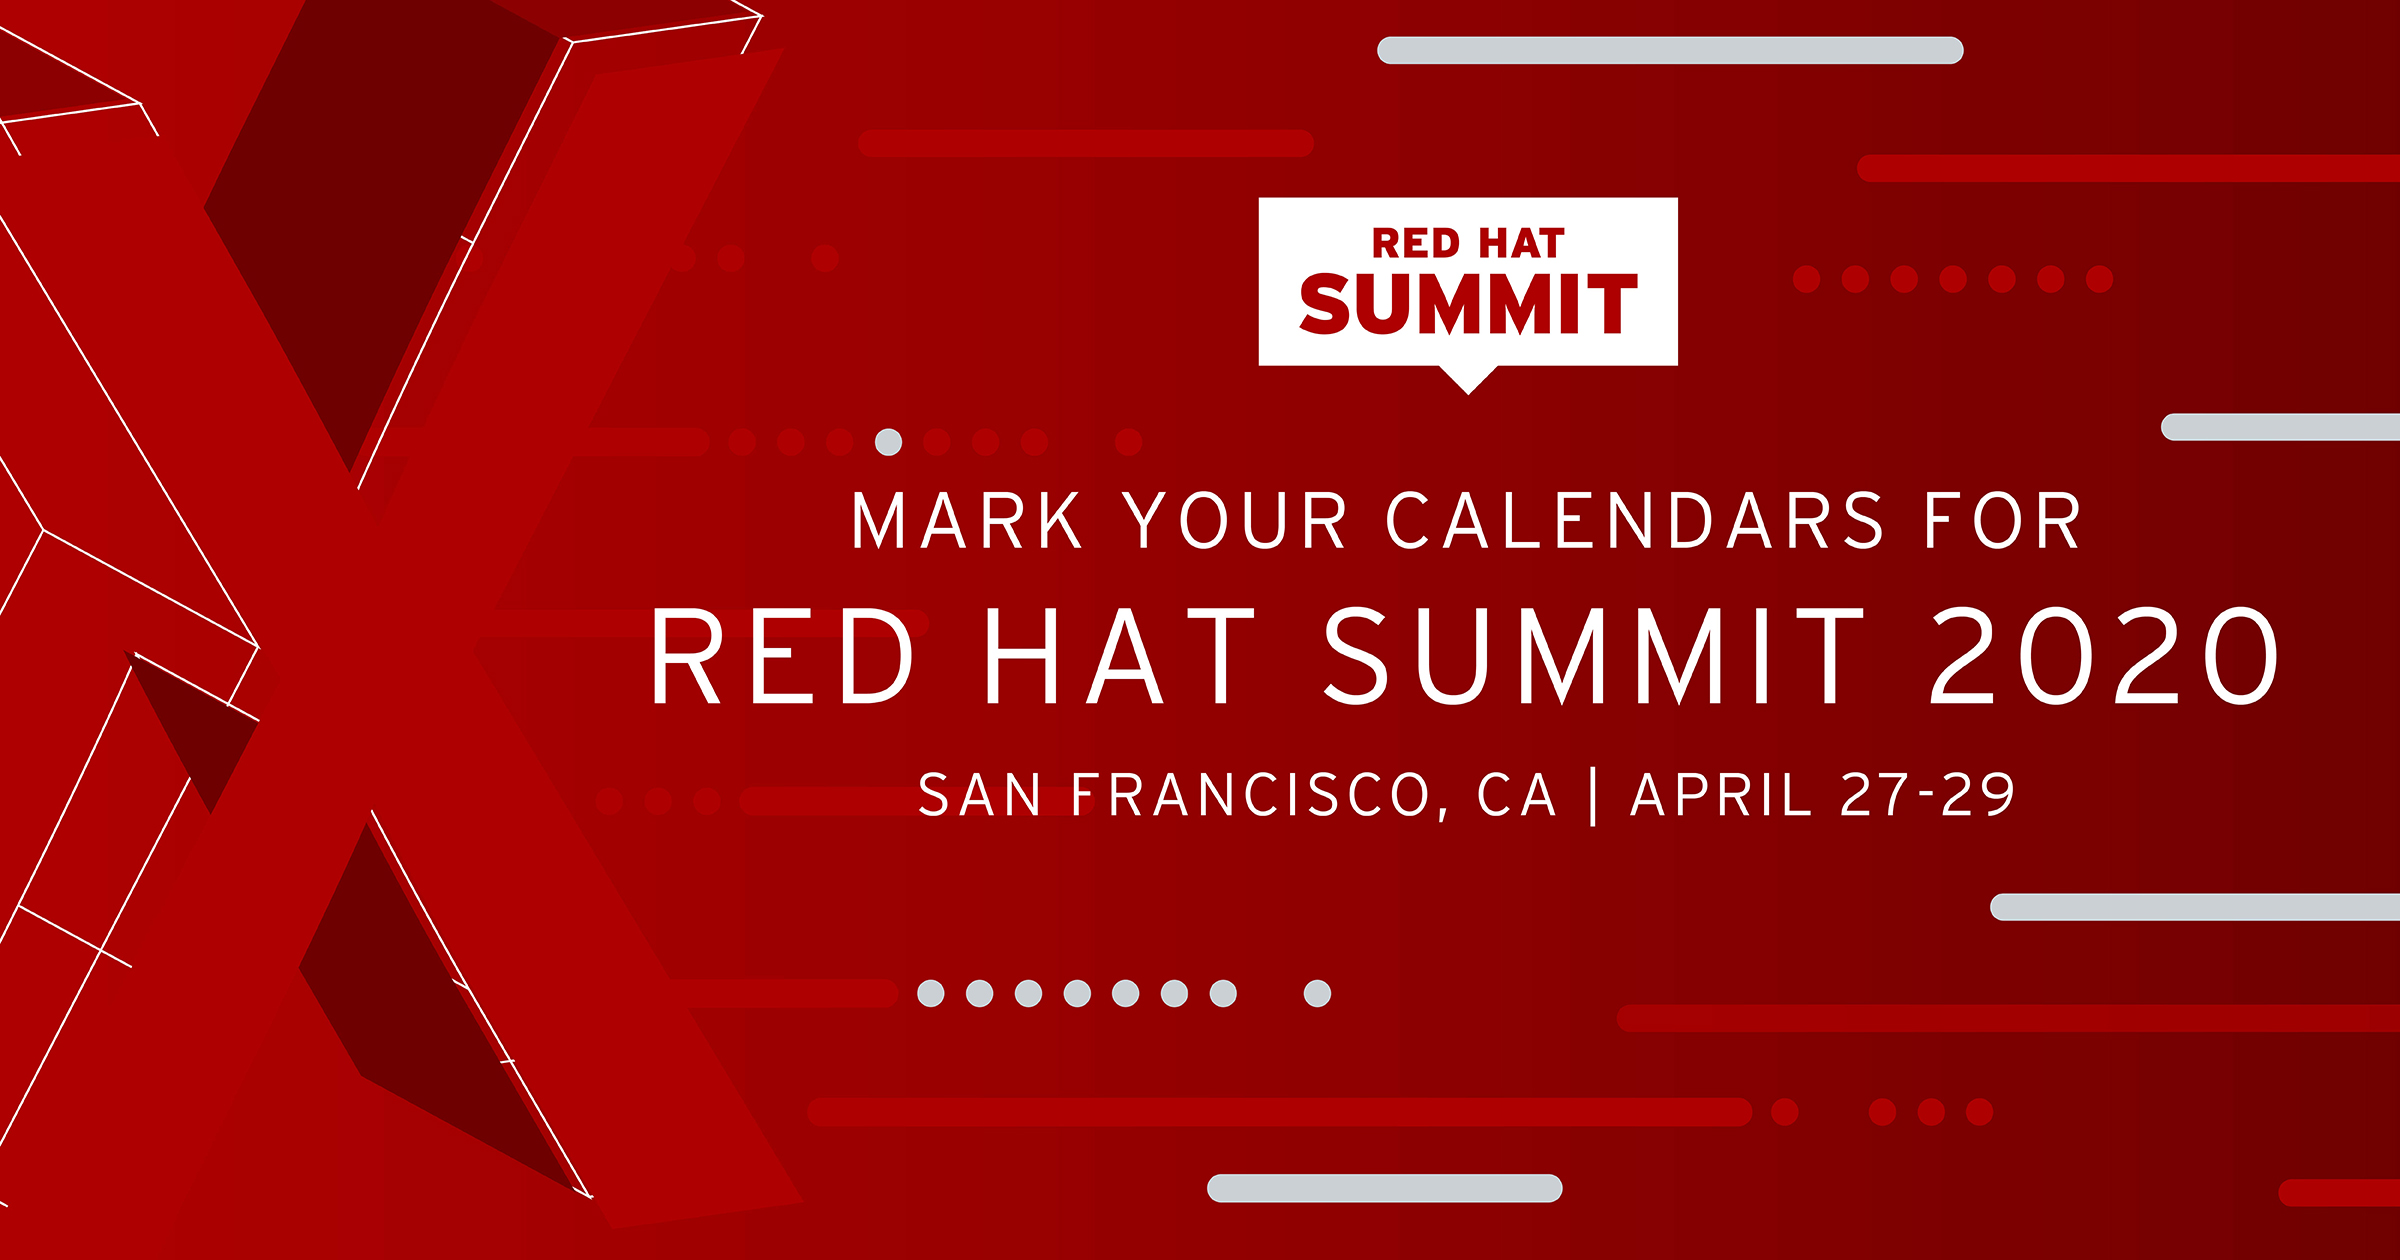 San Francisco Event Calendar 2020 Save the date for Red Hat Summit 2020